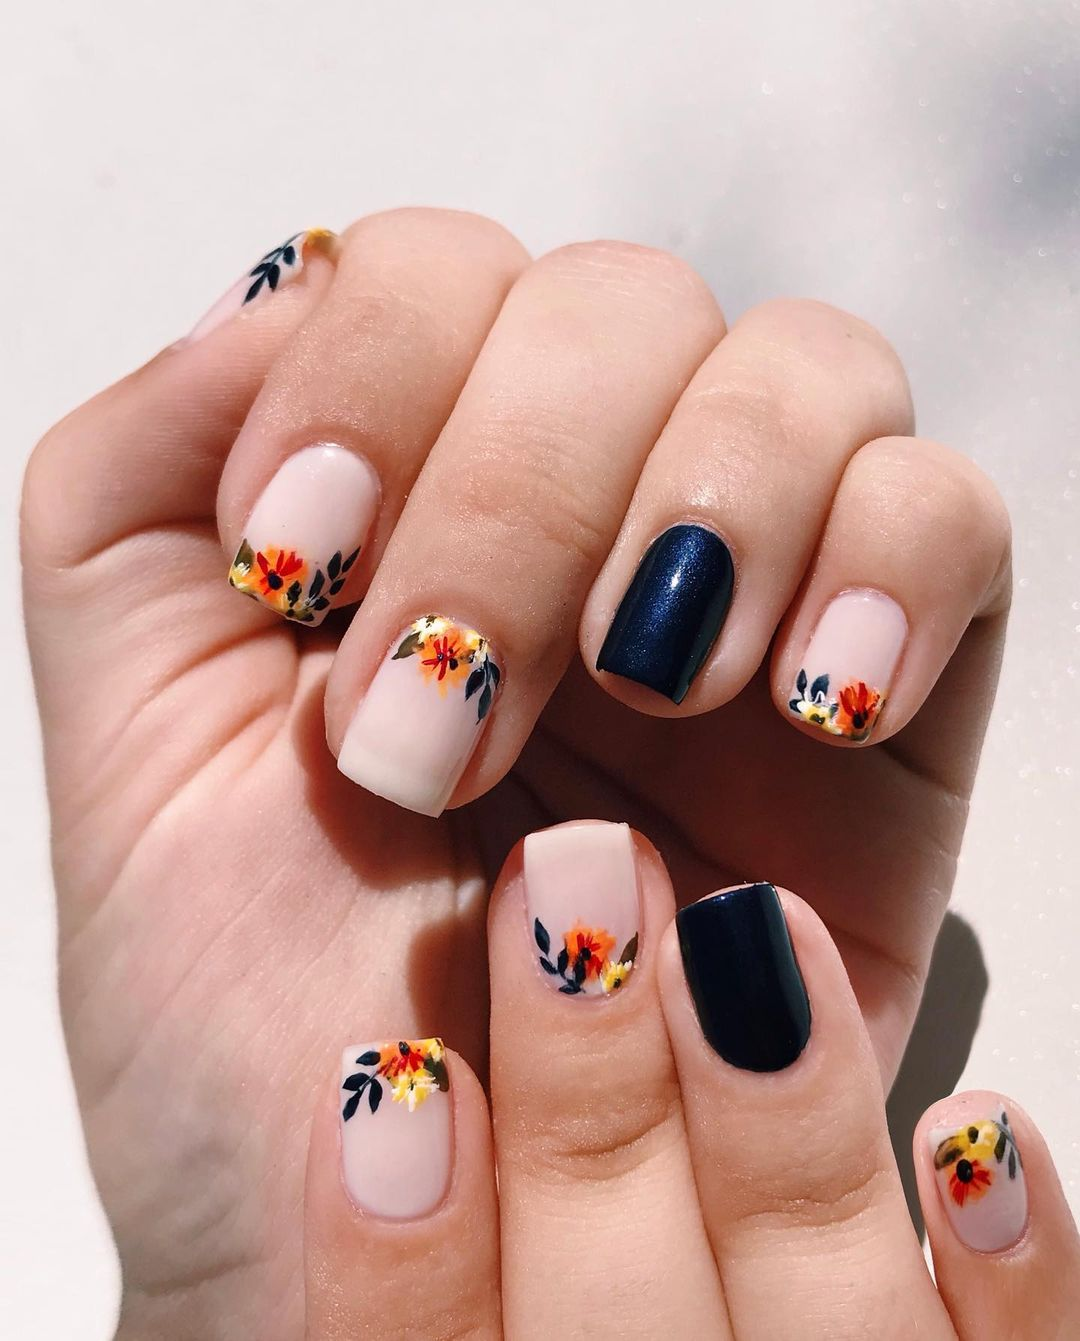 Cute short square nails with dark blue and flower nail art